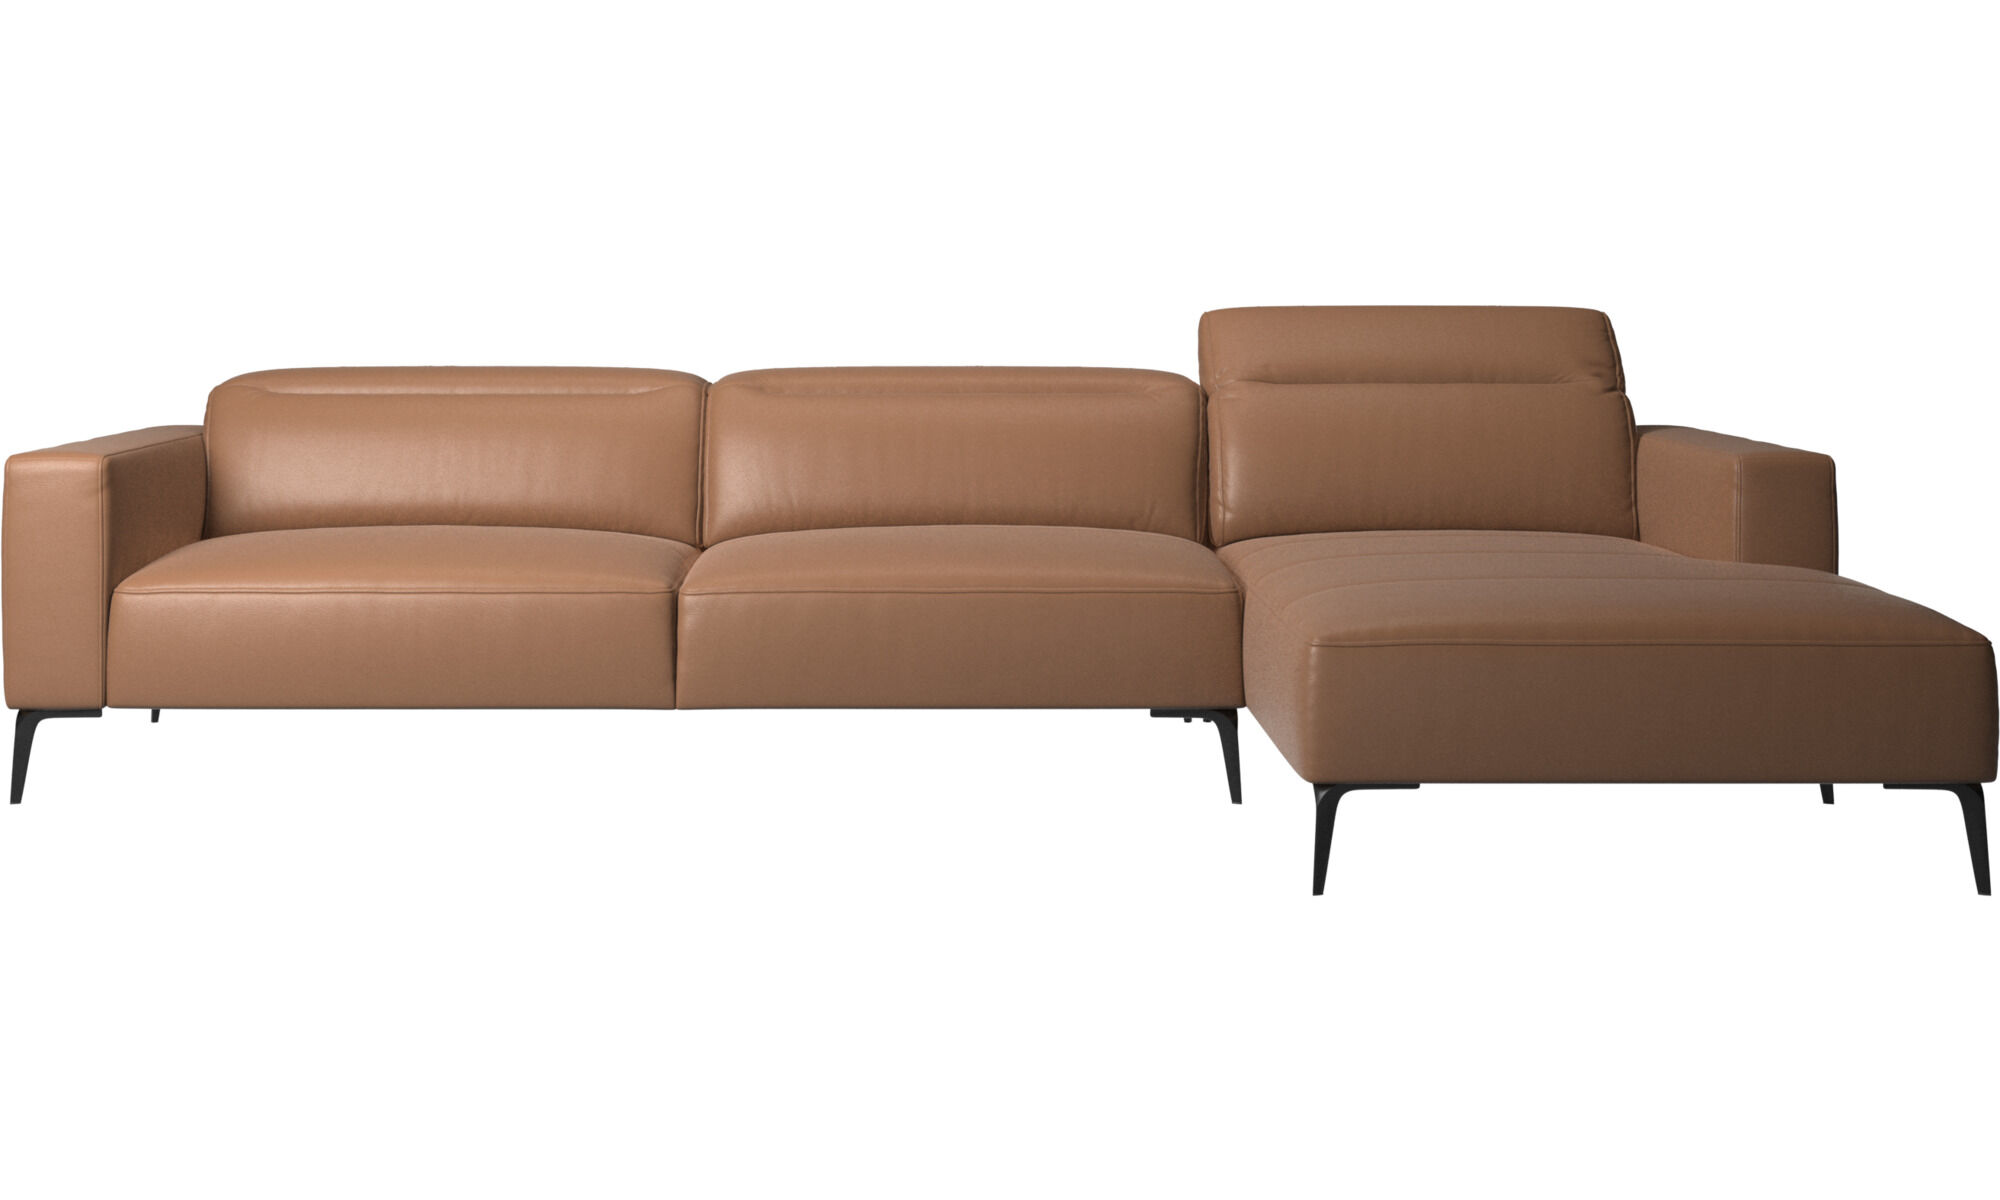 Zürich Sofa by BoConcept, a Sofas for sale on Style Sourcebook